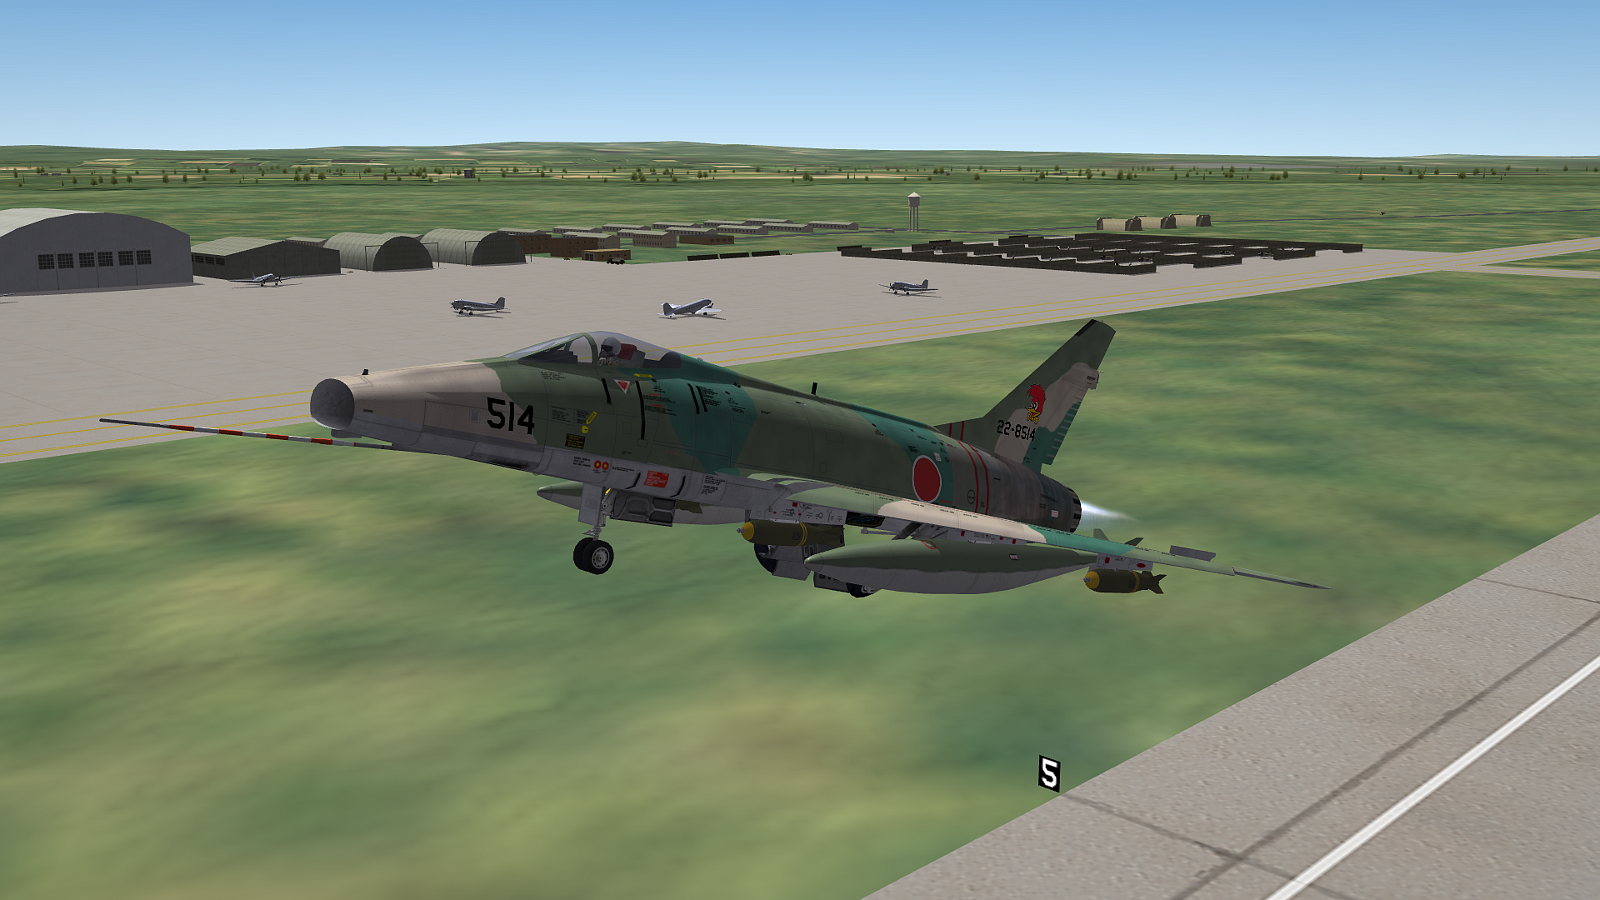 [Fictional] North American F-100DJ Super Sabre for STRIKE FIGHTERS 2